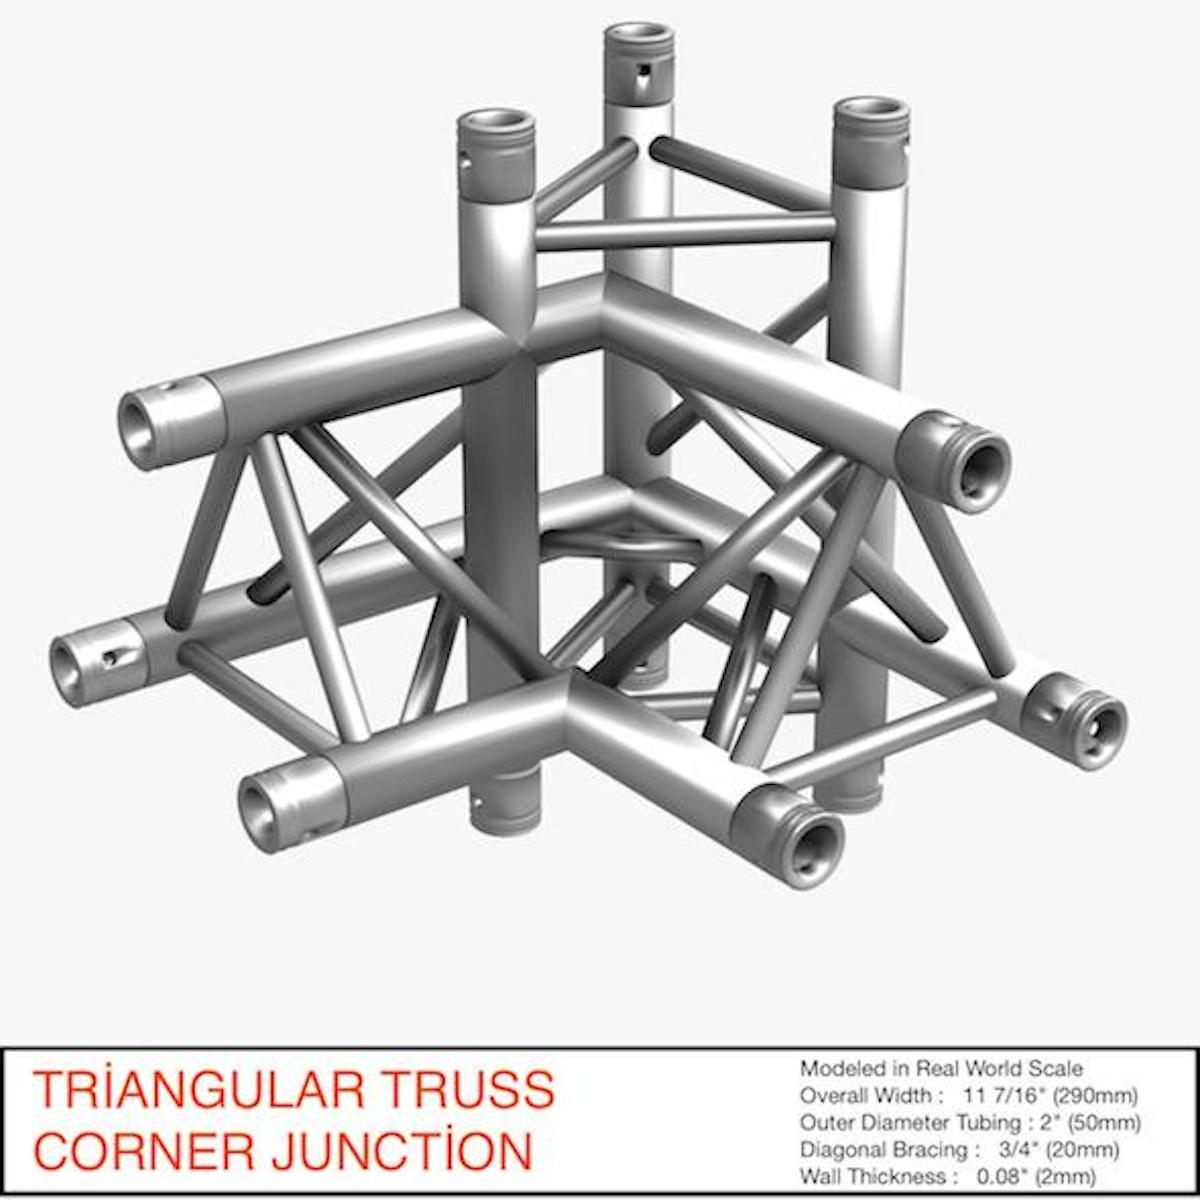 triangular truss corner junction 102 3d model 3ds max dxf fbx b3d c4d other  obj 268931